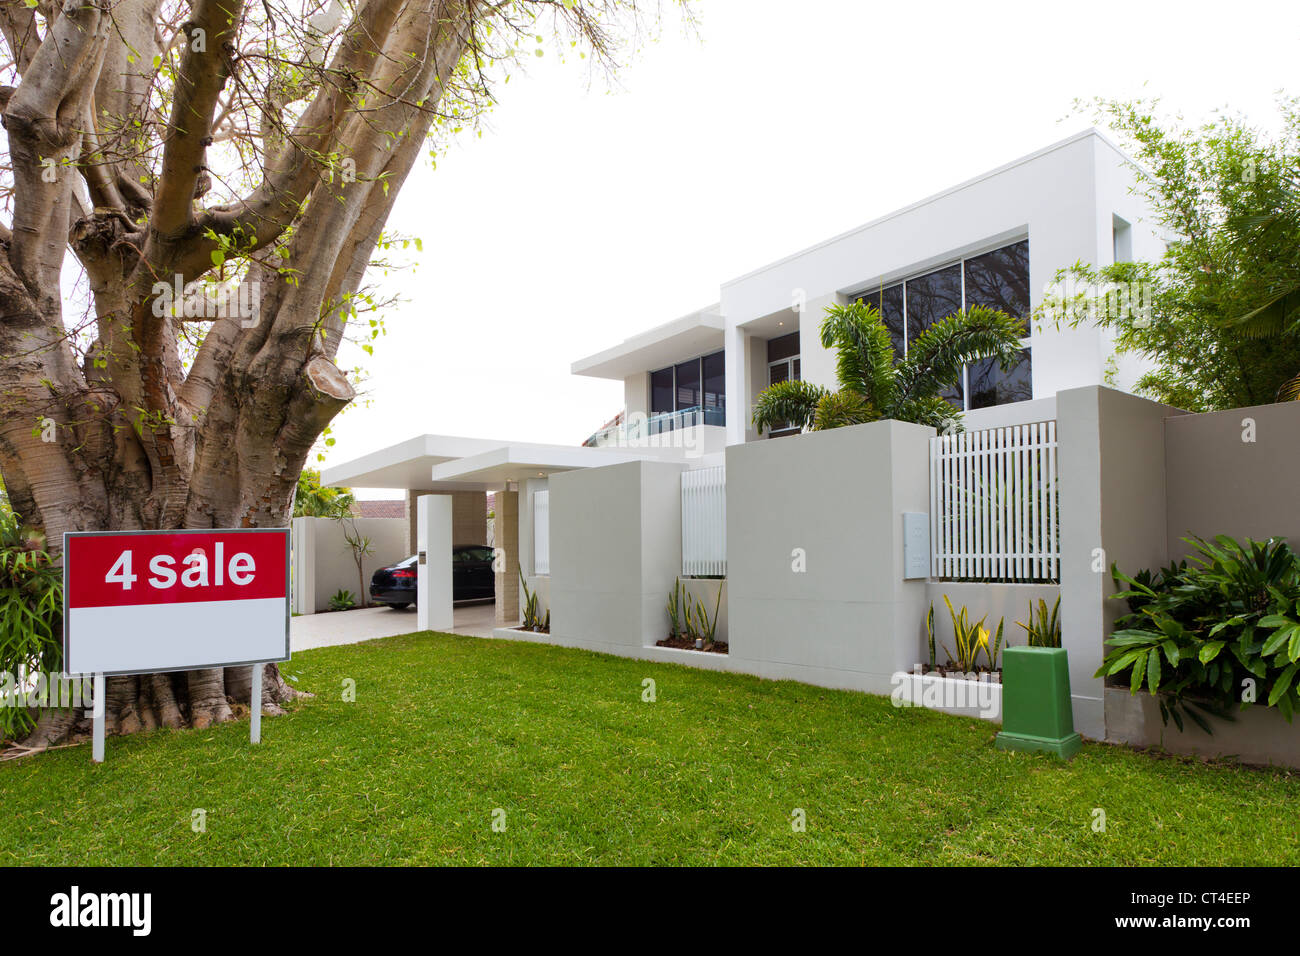 Luxury house for sale Stock Photo